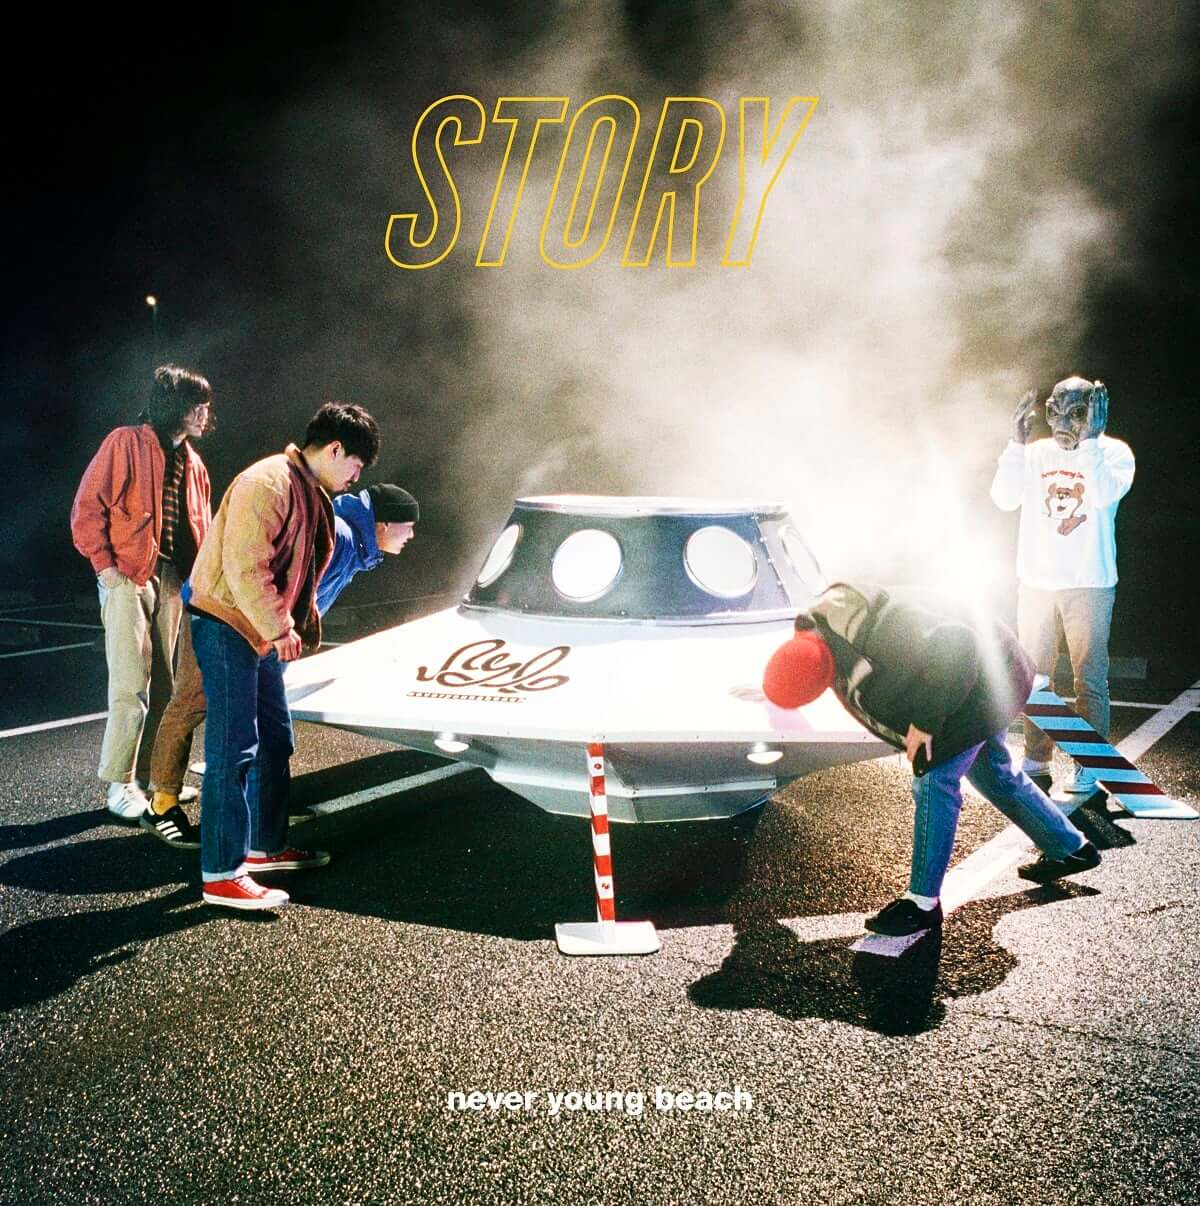 never young beach、ニューアルバム『STORY』収録新曲「春らんまん」を先行配信 music190326_neveryoungbeach_1-1200x1206